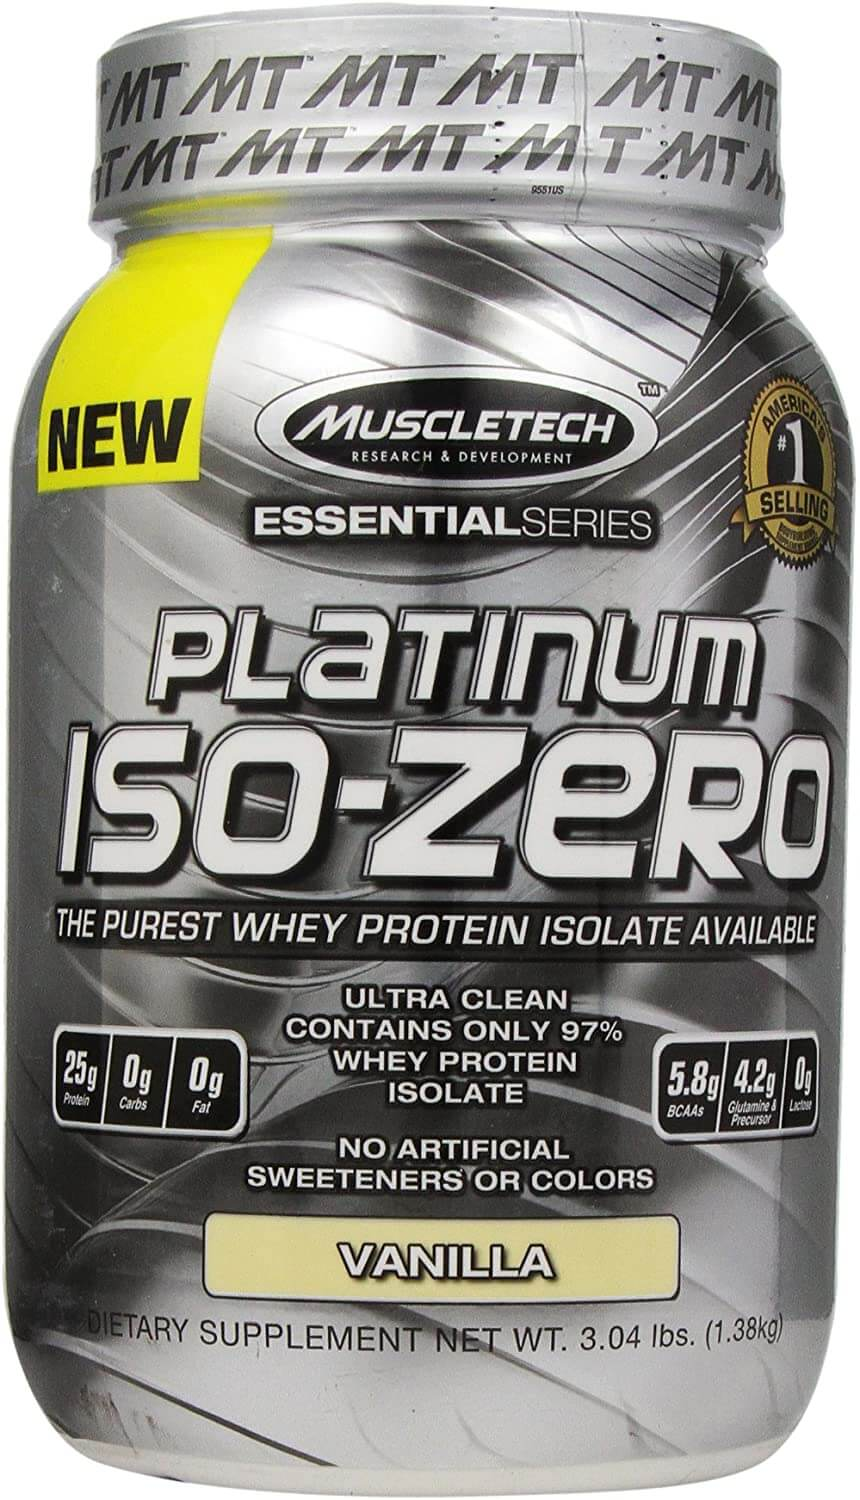 The Purest Whey Protein Isolate